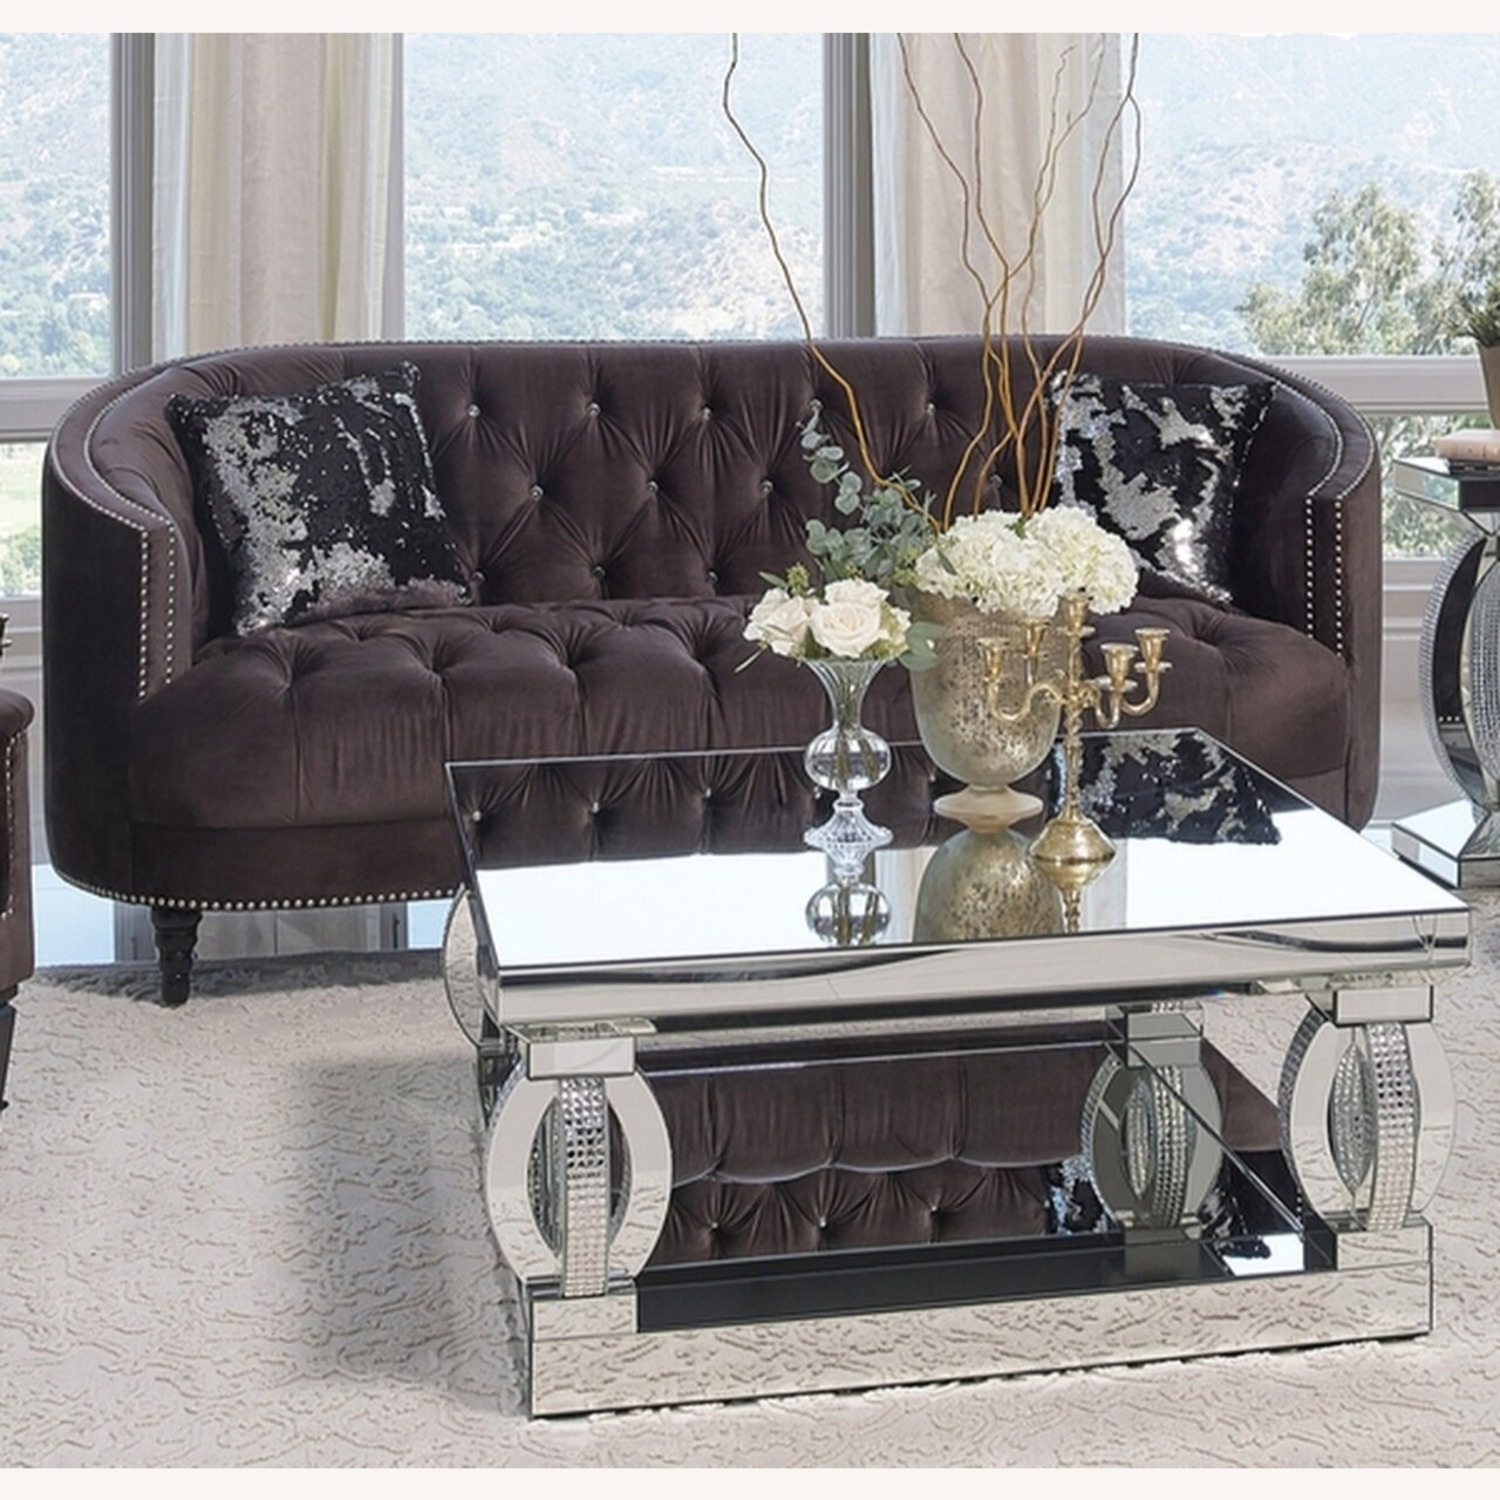 Sofa In C-Shape Finished In Chocolate Brown - image-1